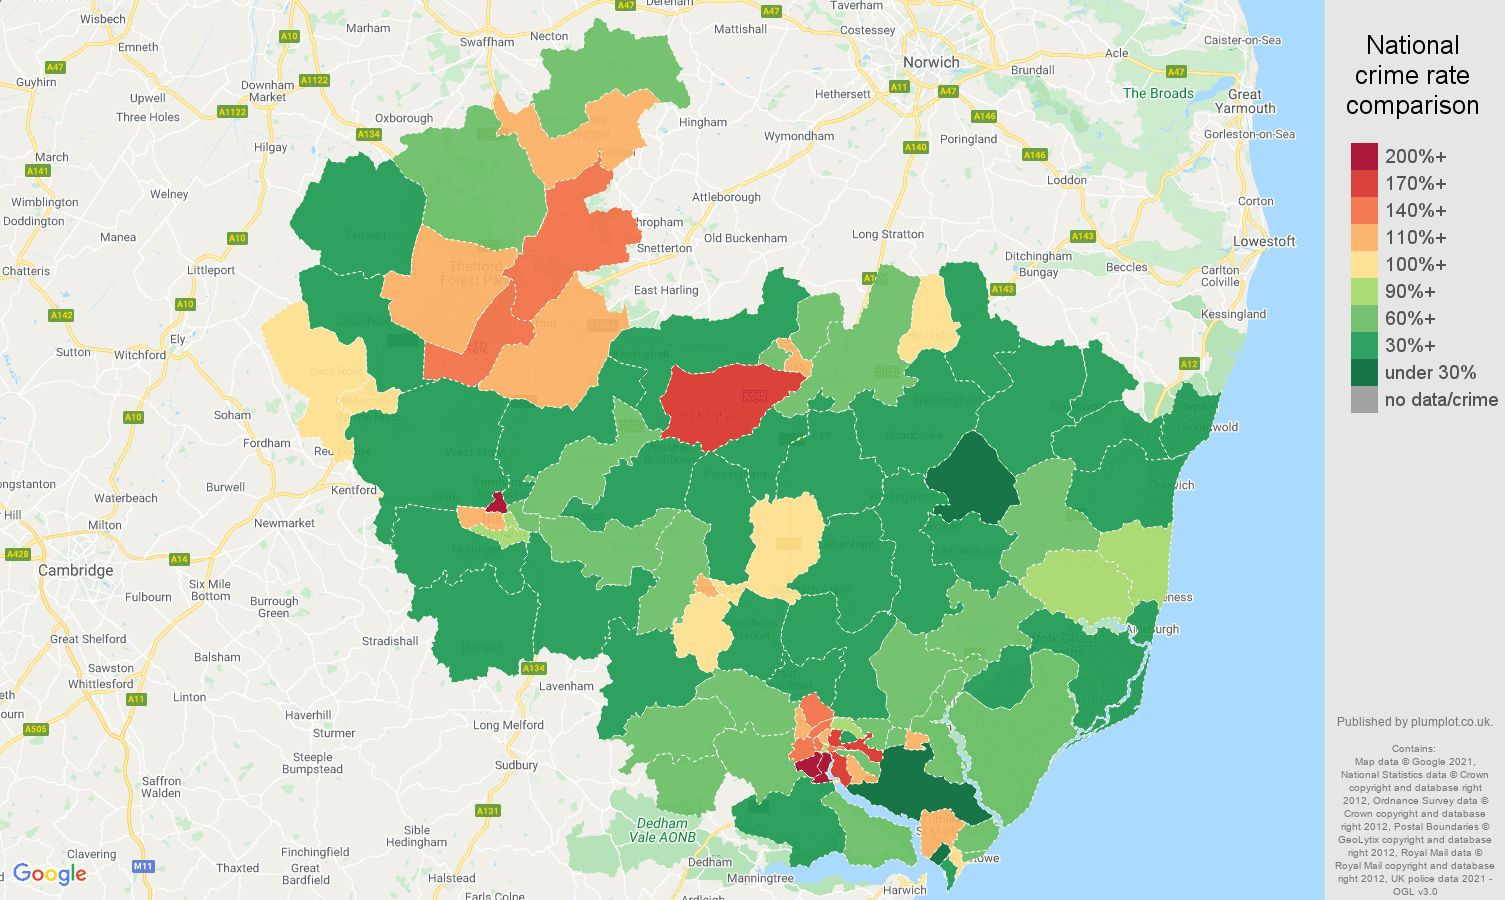 Ipswich violent crime rate comparison map